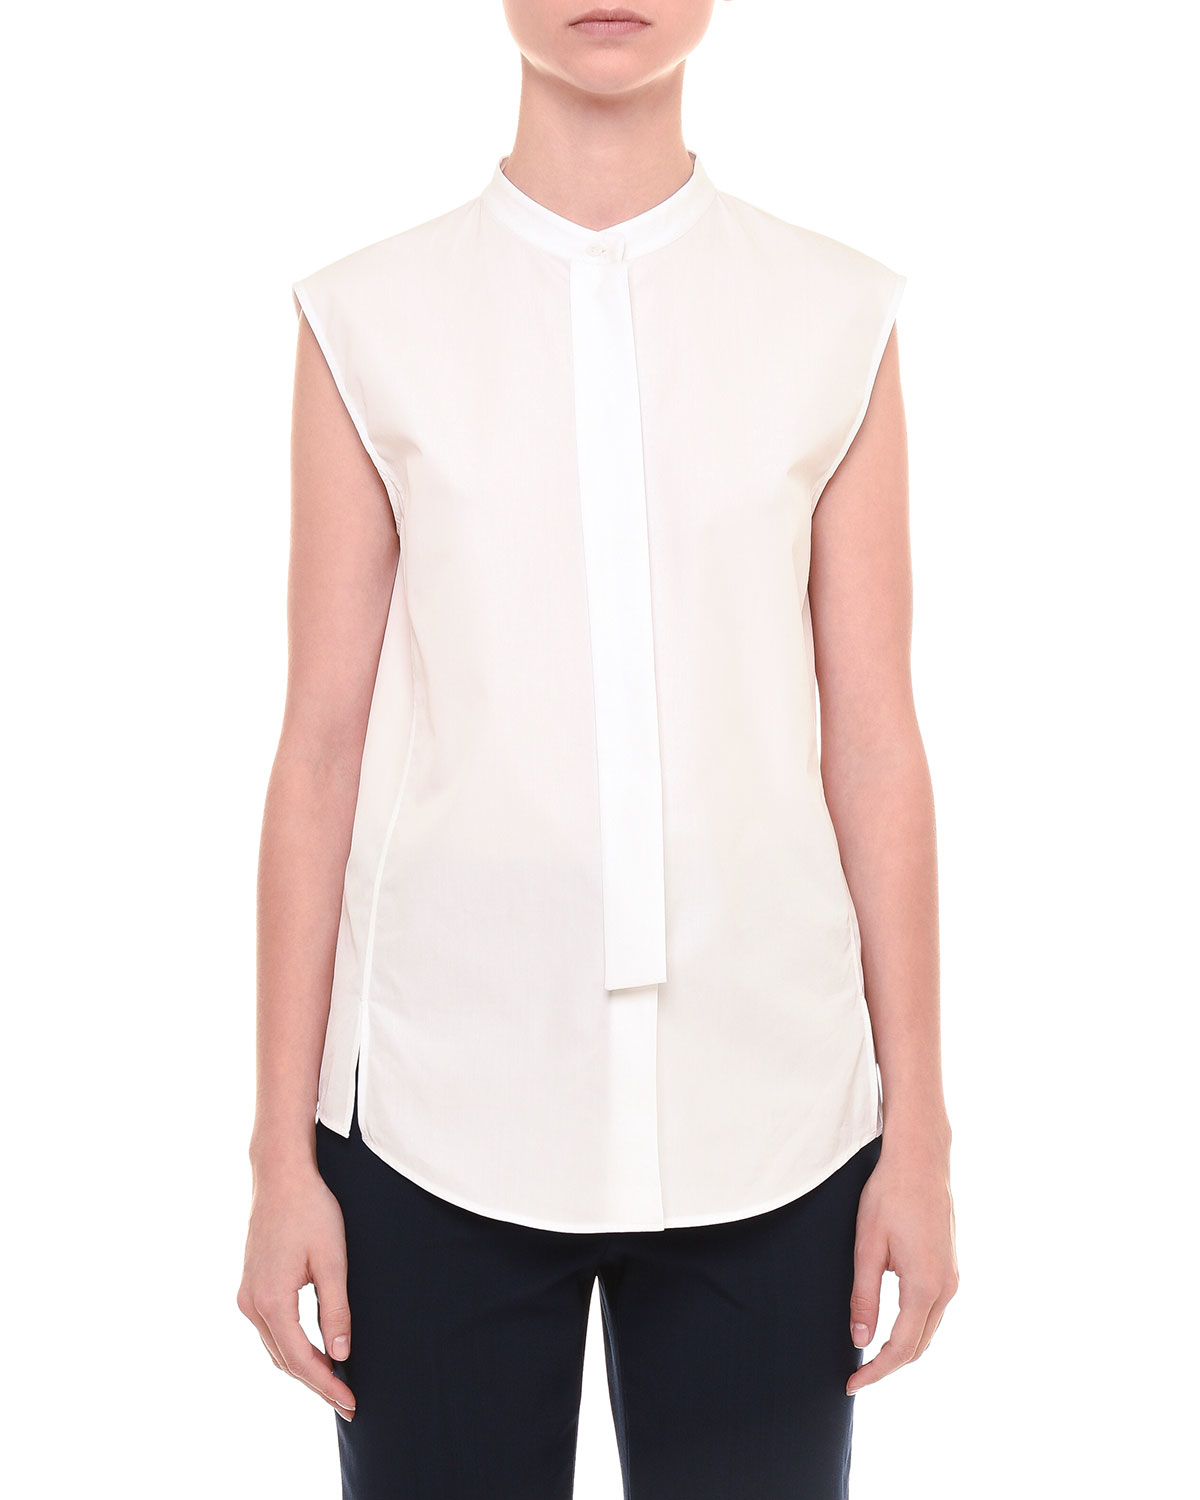 Jil Sander Sleeveless Button-Up Top Find Great Cheap Online Discounts Online cIsKlSD75